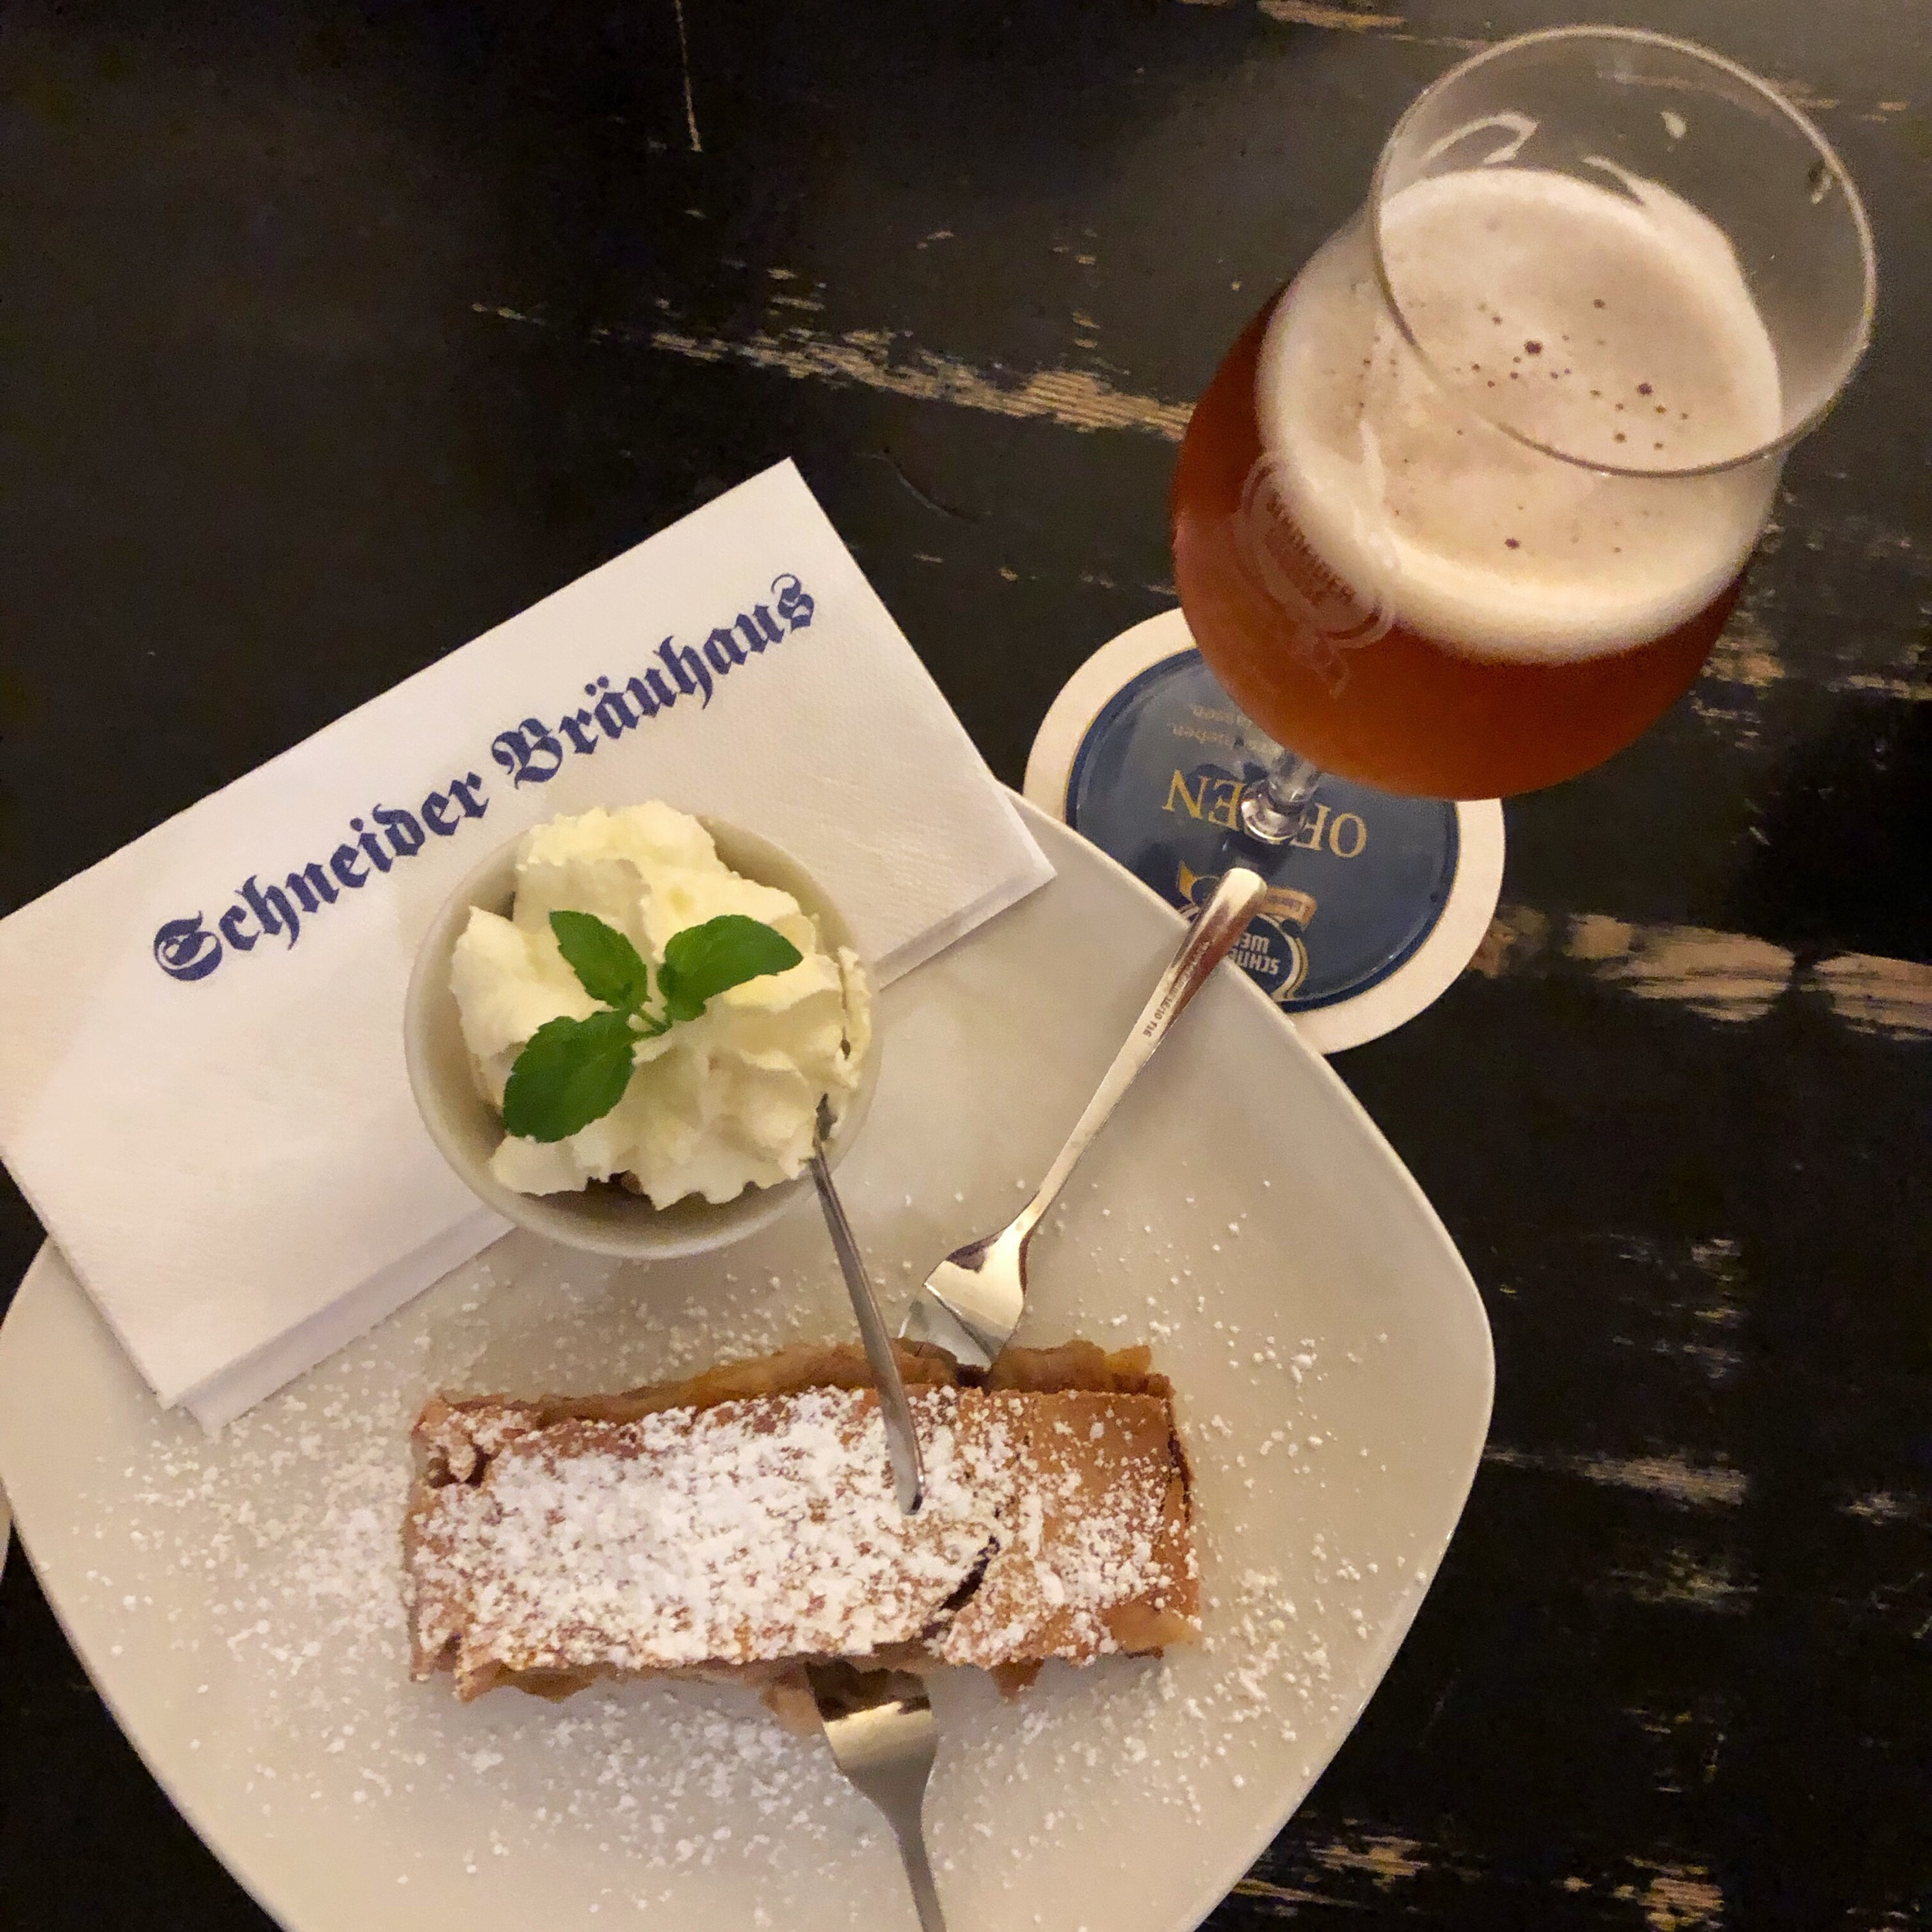 This is the apple strudel dreams are made of (with a side of Nelson Sauvin beer on the side!)